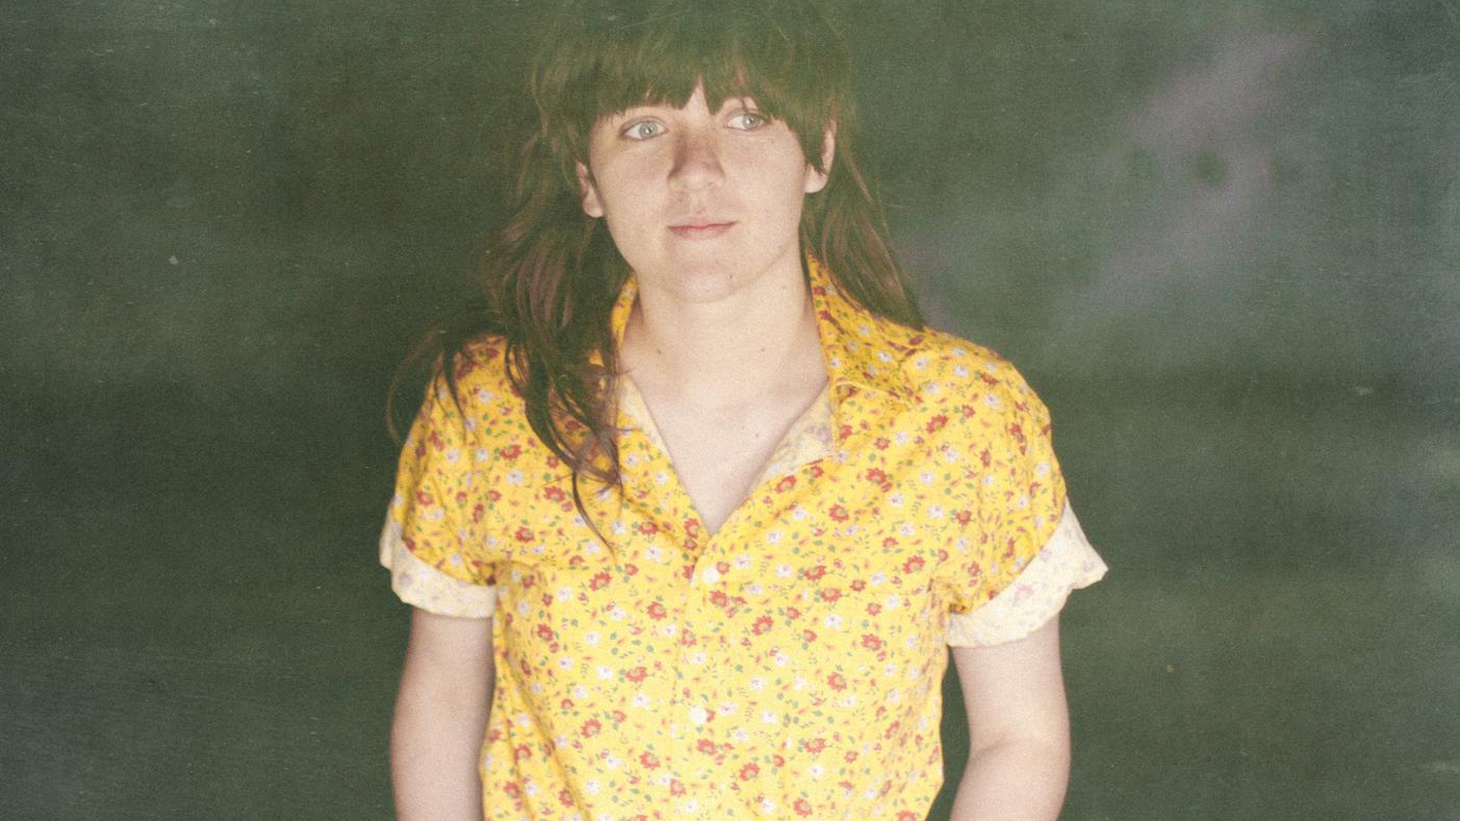 Melbourne-based singer and guitarist Courtney Barnett makes a big impact with her personal lyrics and unfiltered approach. She doesn't hold back...